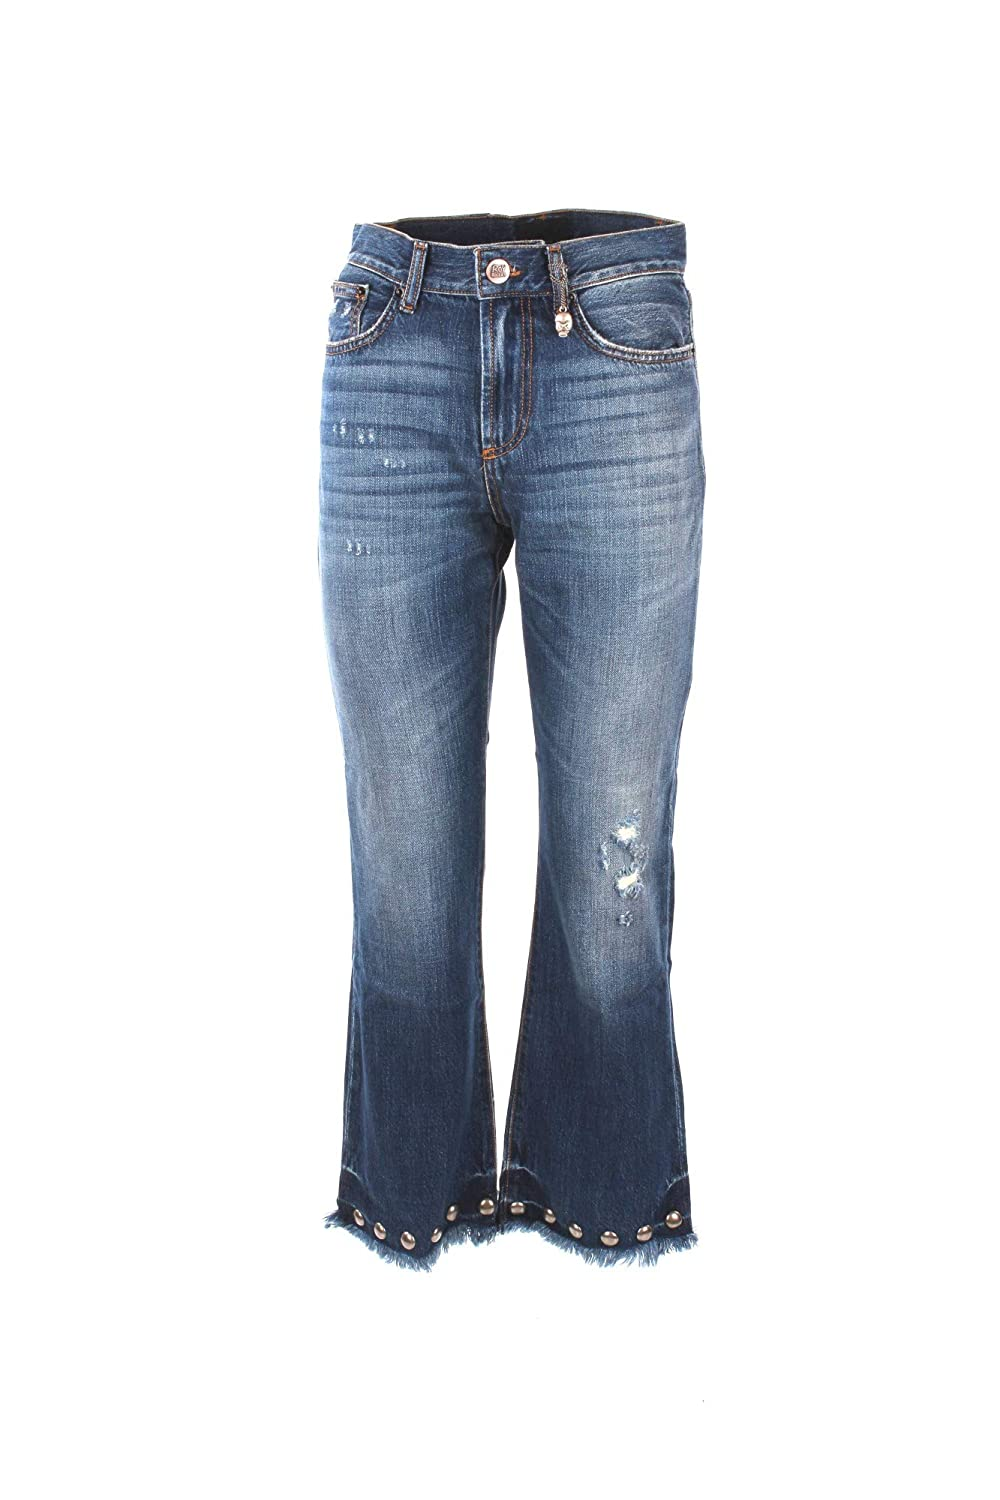 ROY ROGER'S Jeans Donna 29 Denim A18rod036d225107974 Autunno Inverno 2018/19